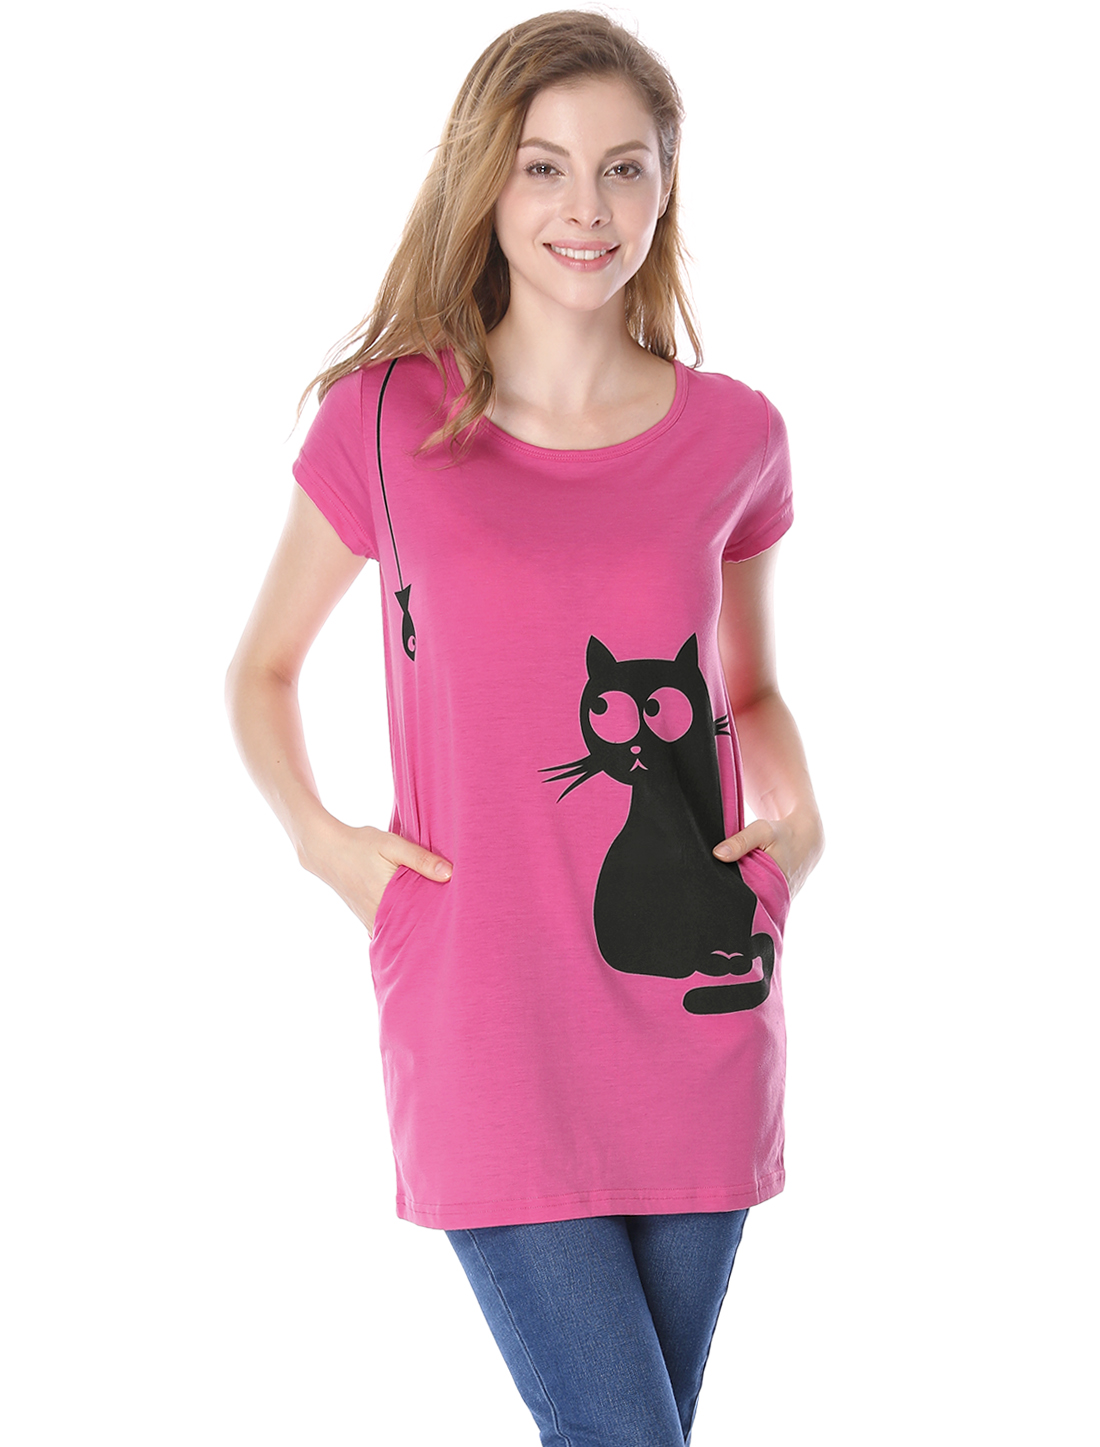 Women NEW Short Sleeves Cartoon Cat Fish Print Loose Tunic Top Fuchsia S